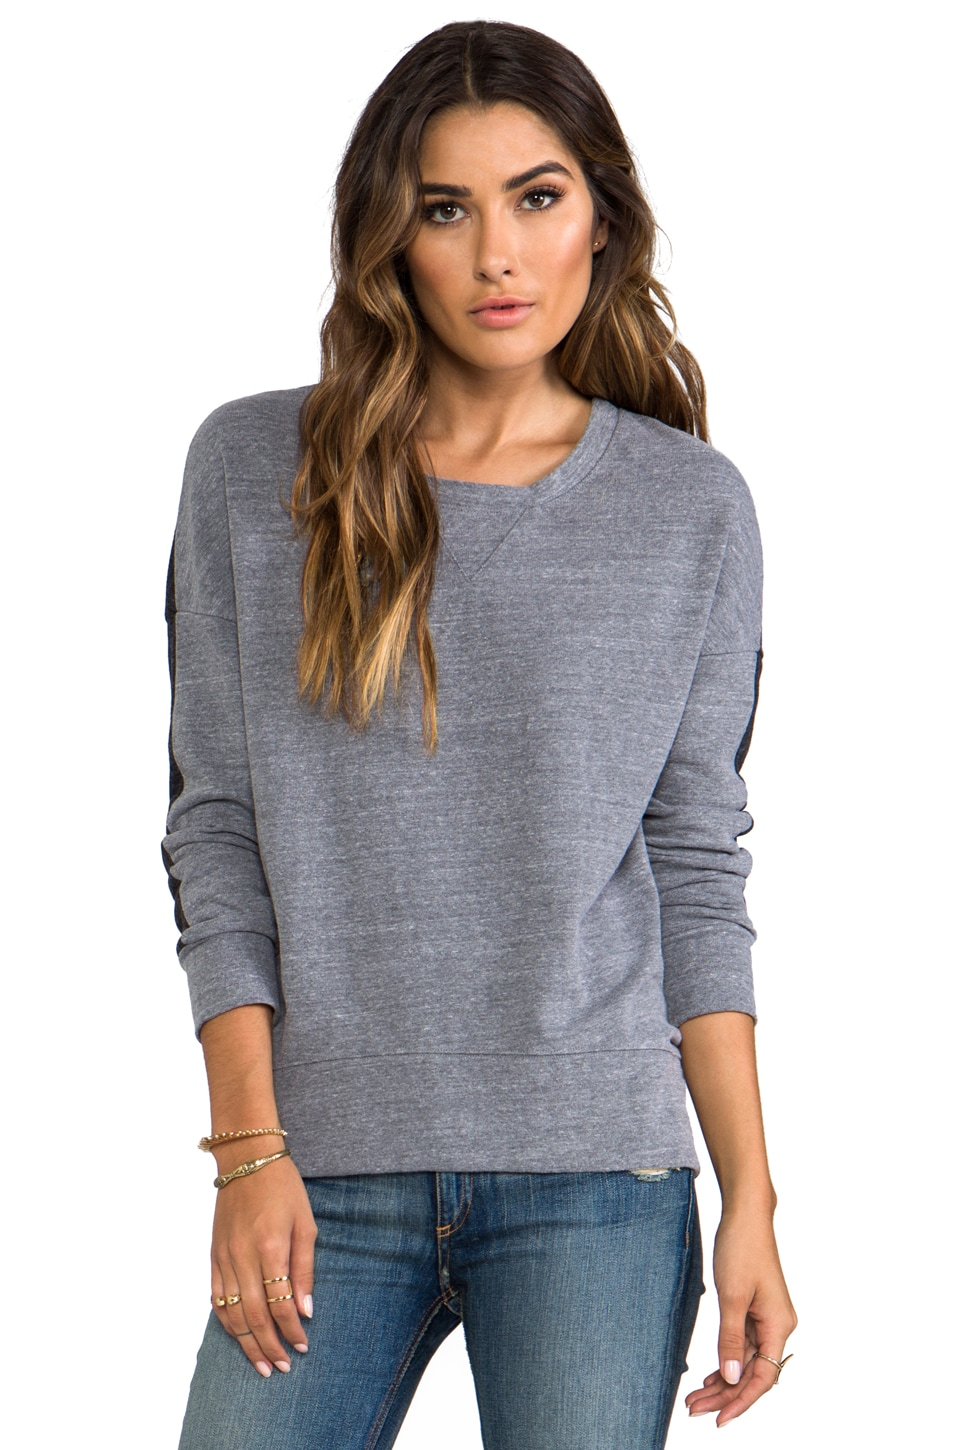 MONROW Half and Half Oversized Sweatshirt in Dark Heather